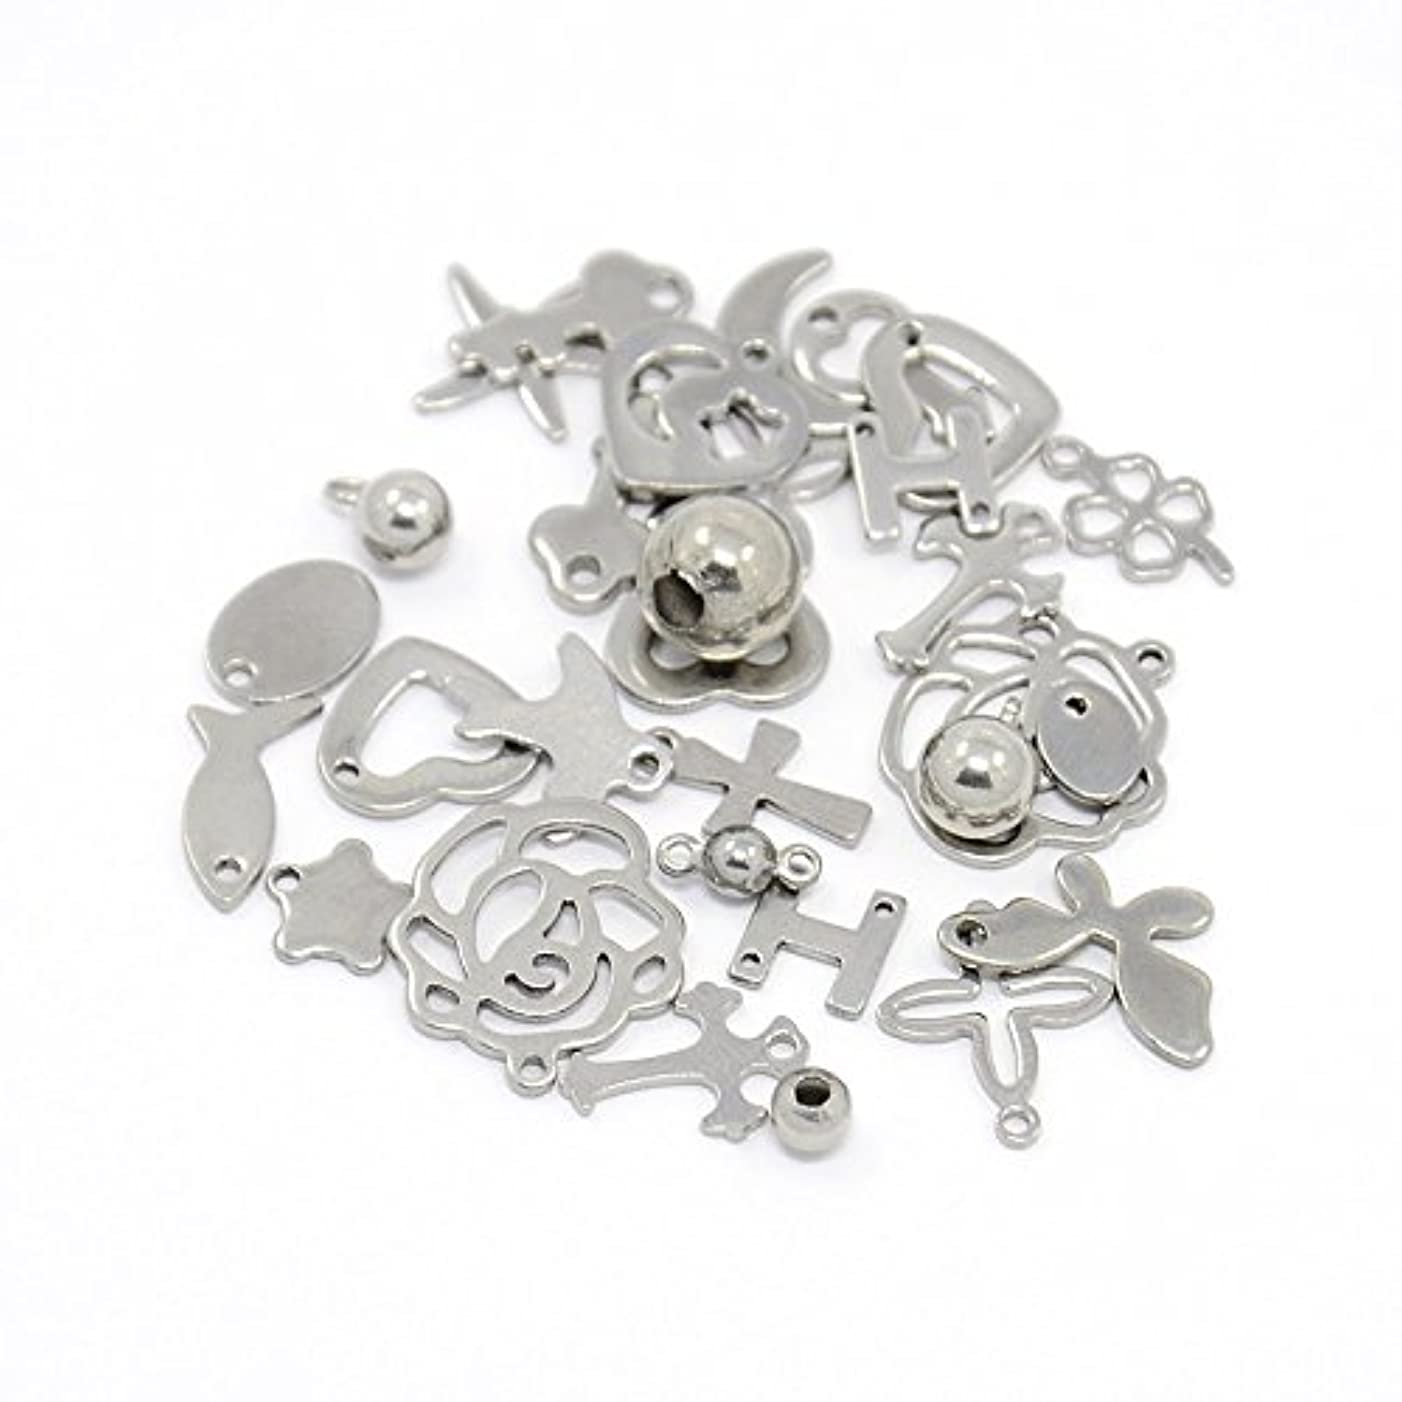 PEPPERLONELY Brand 20PC Mixed 304 Stainless Steel